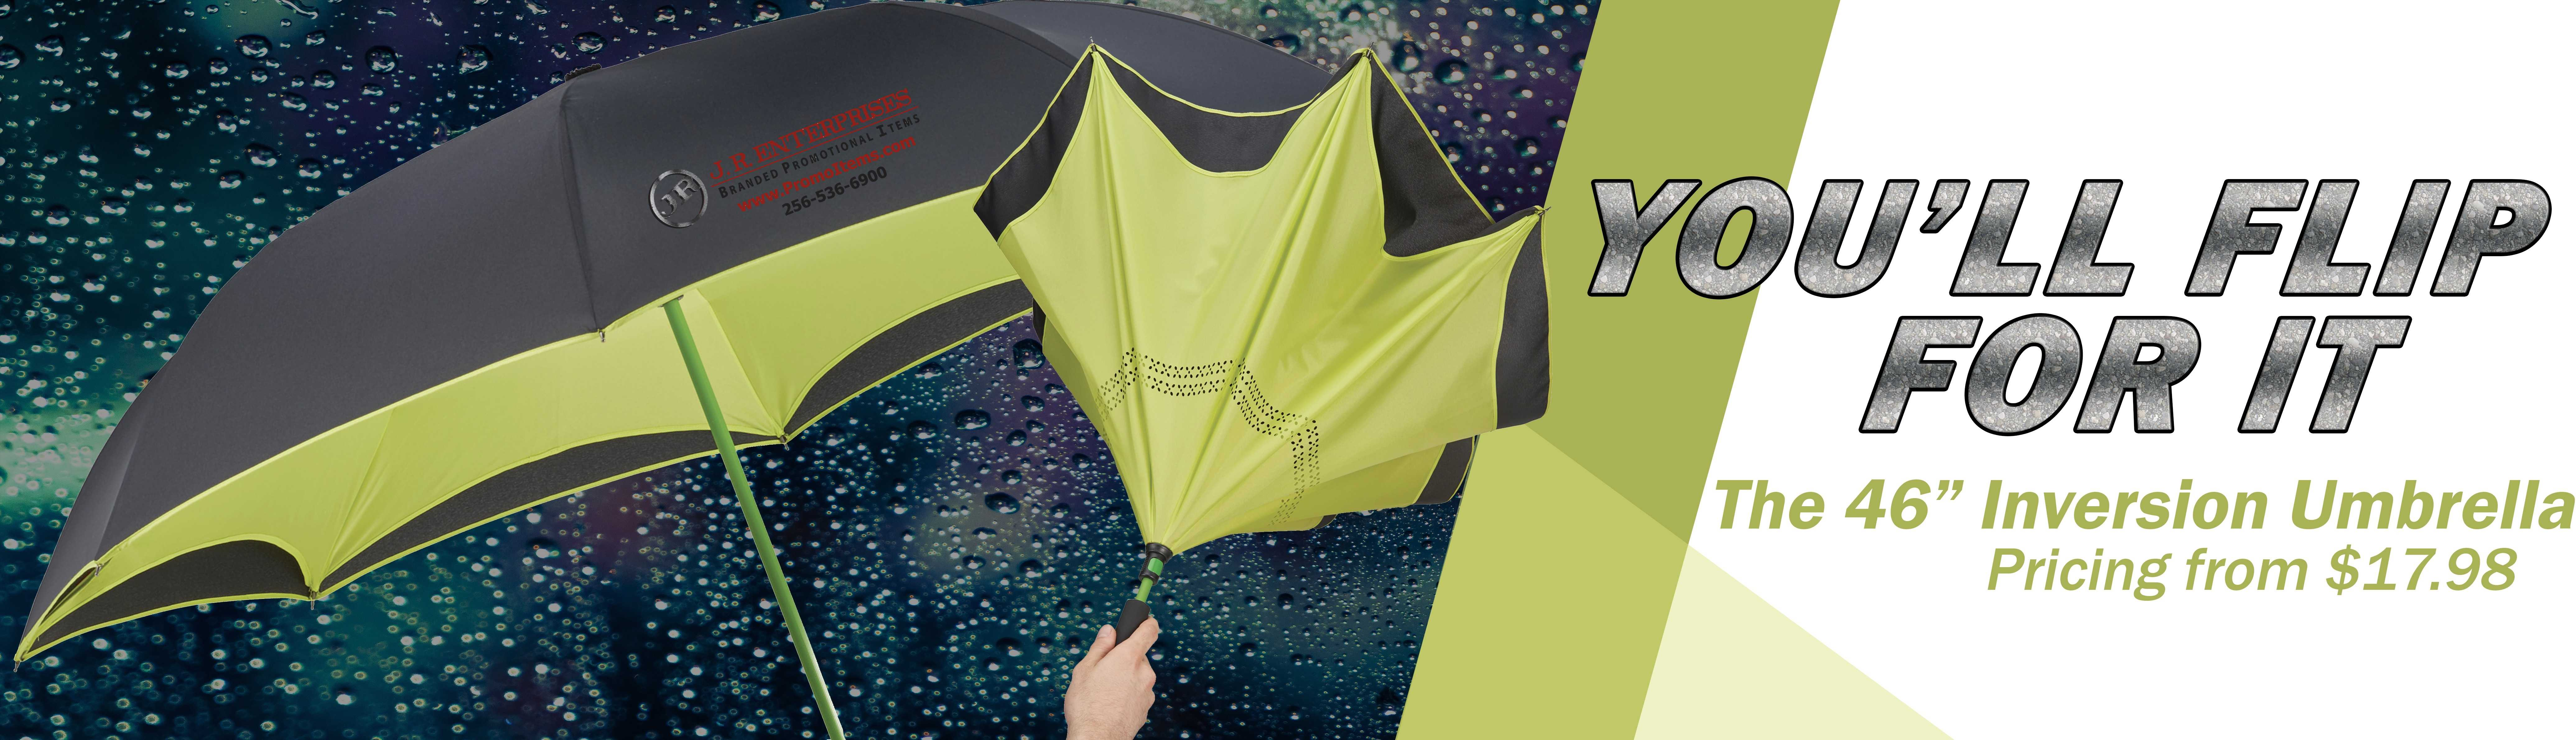 AIM Inversion Umbrella